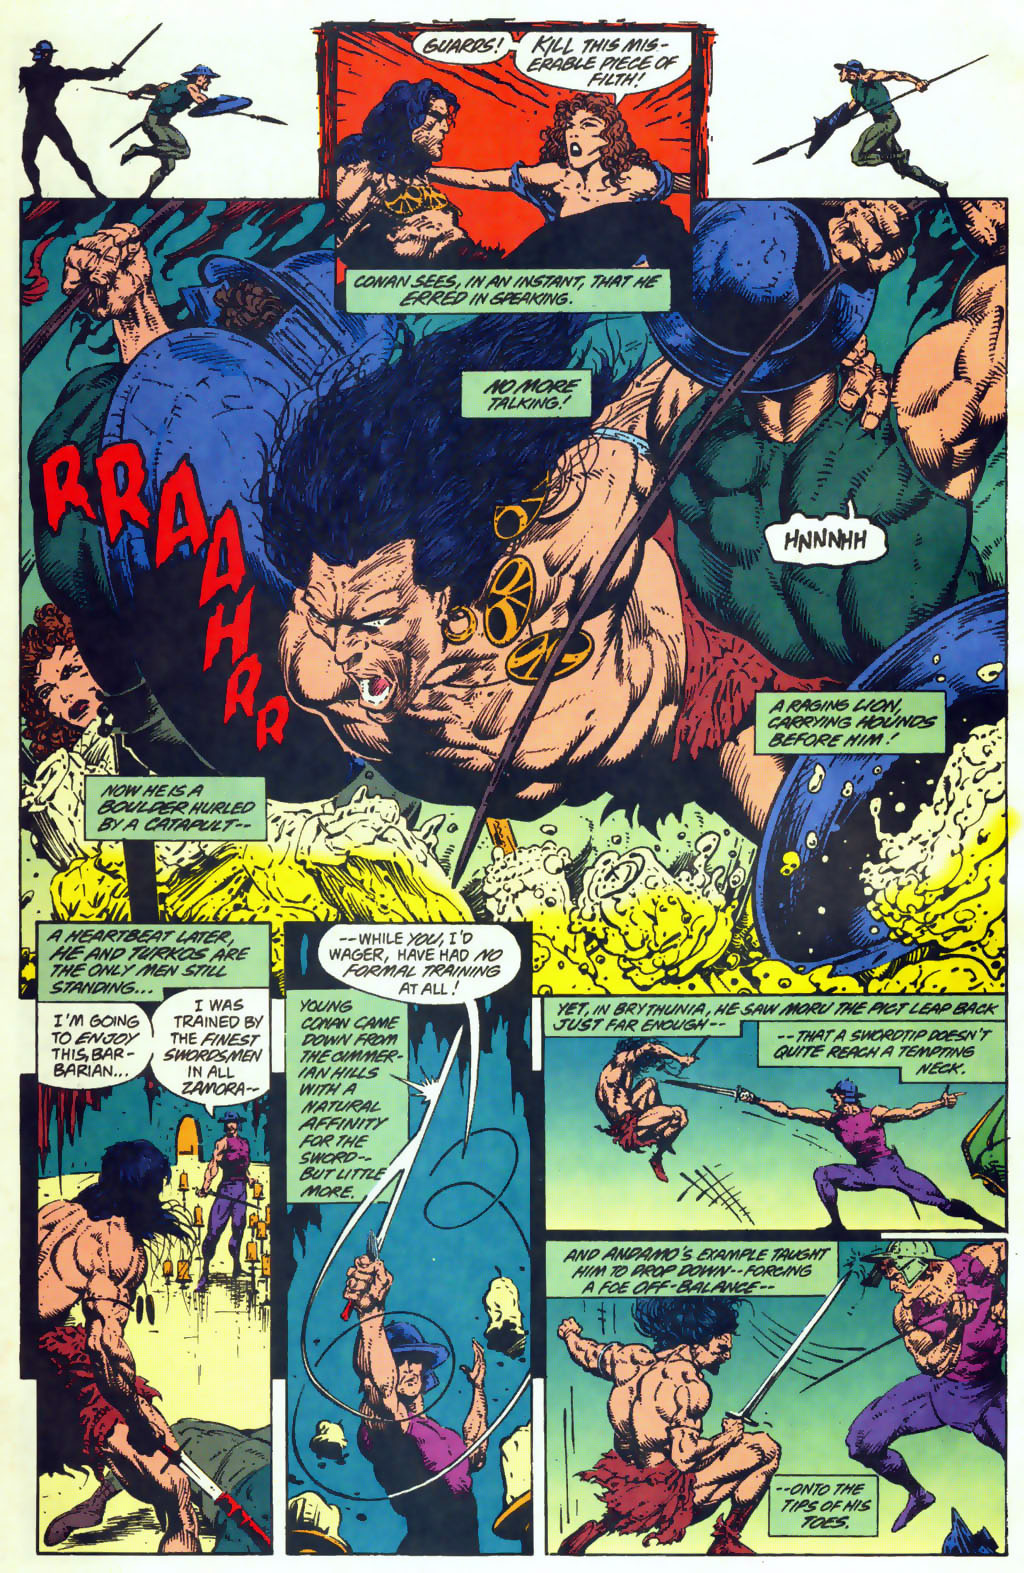 Read online Conan the Adventurer comic -  Issue #10 - 8